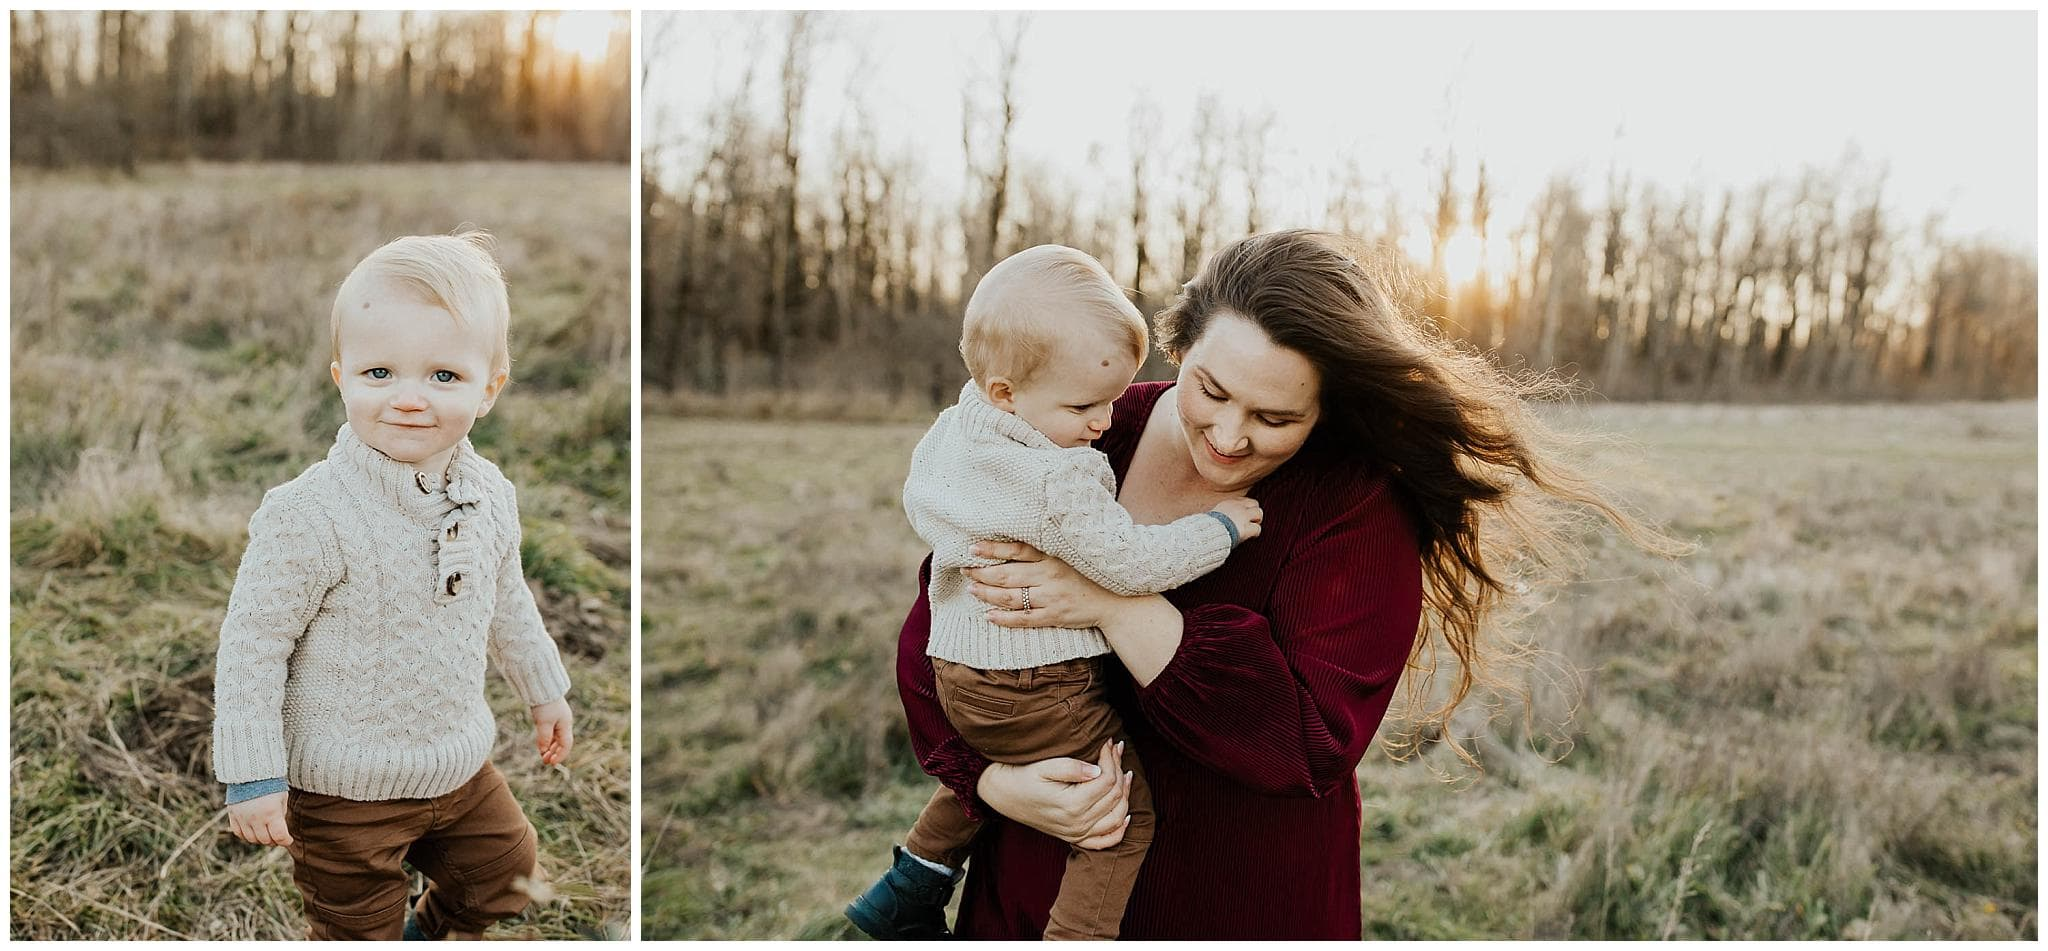 mom holding toddler son while she walks through field